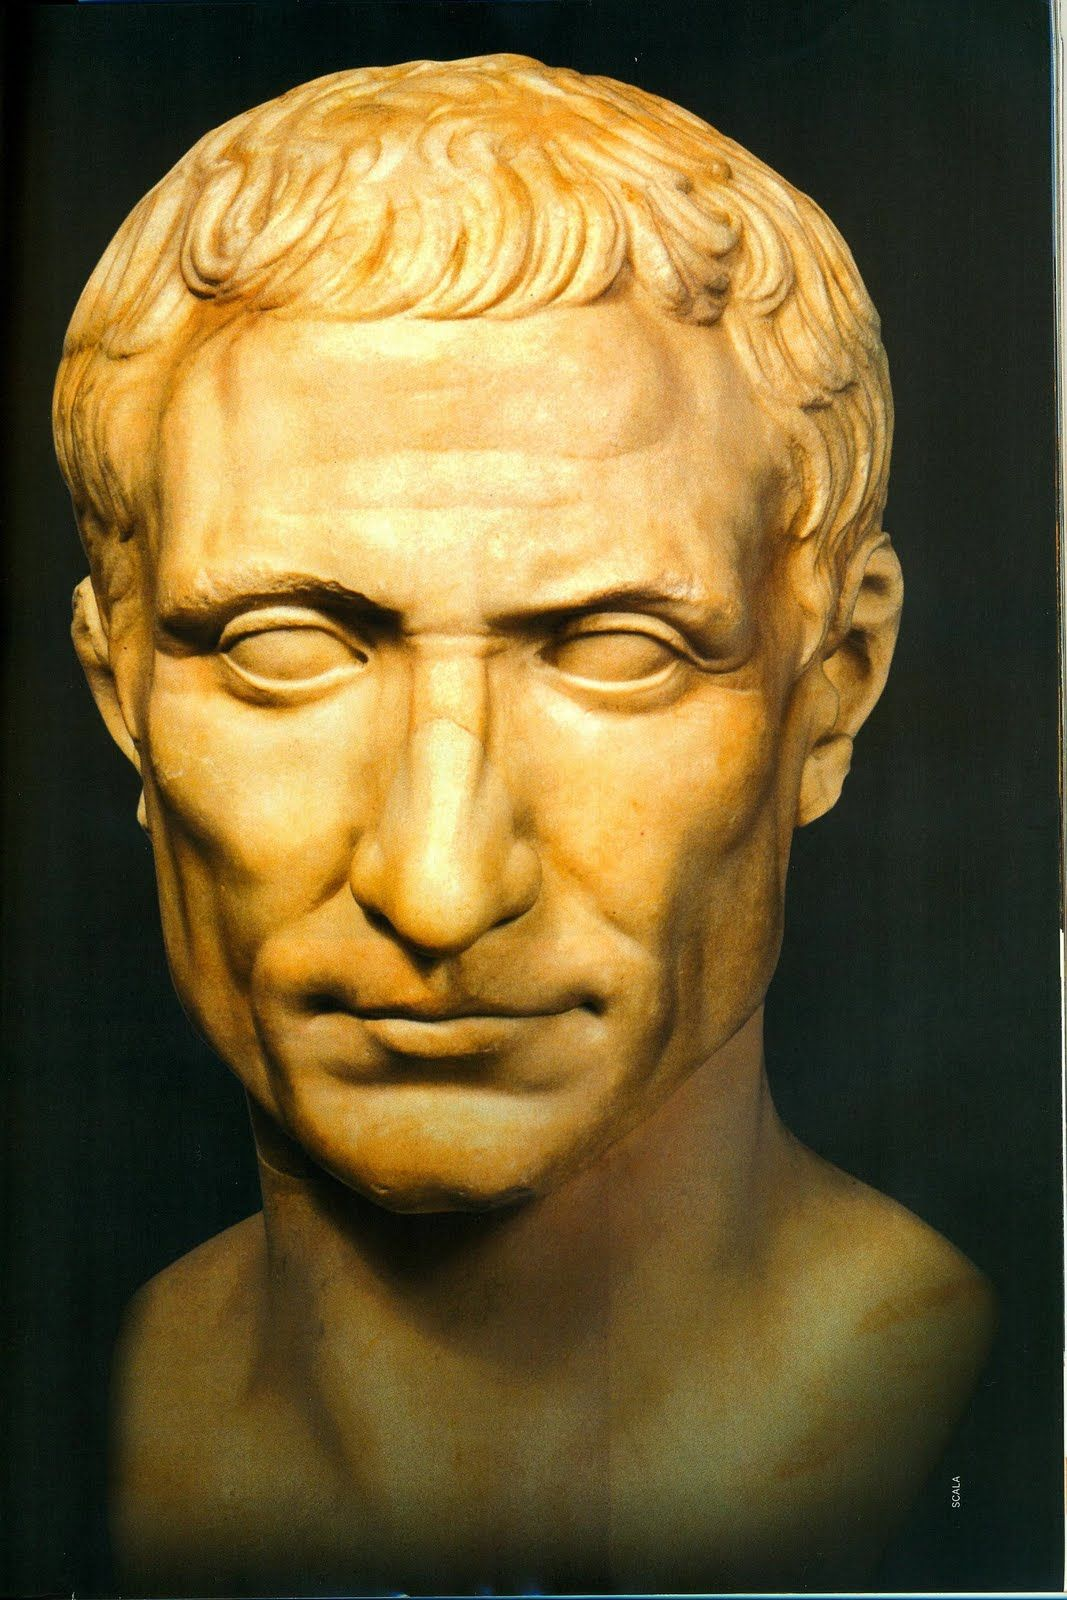 Who was the best/worst leader in julius caesar?